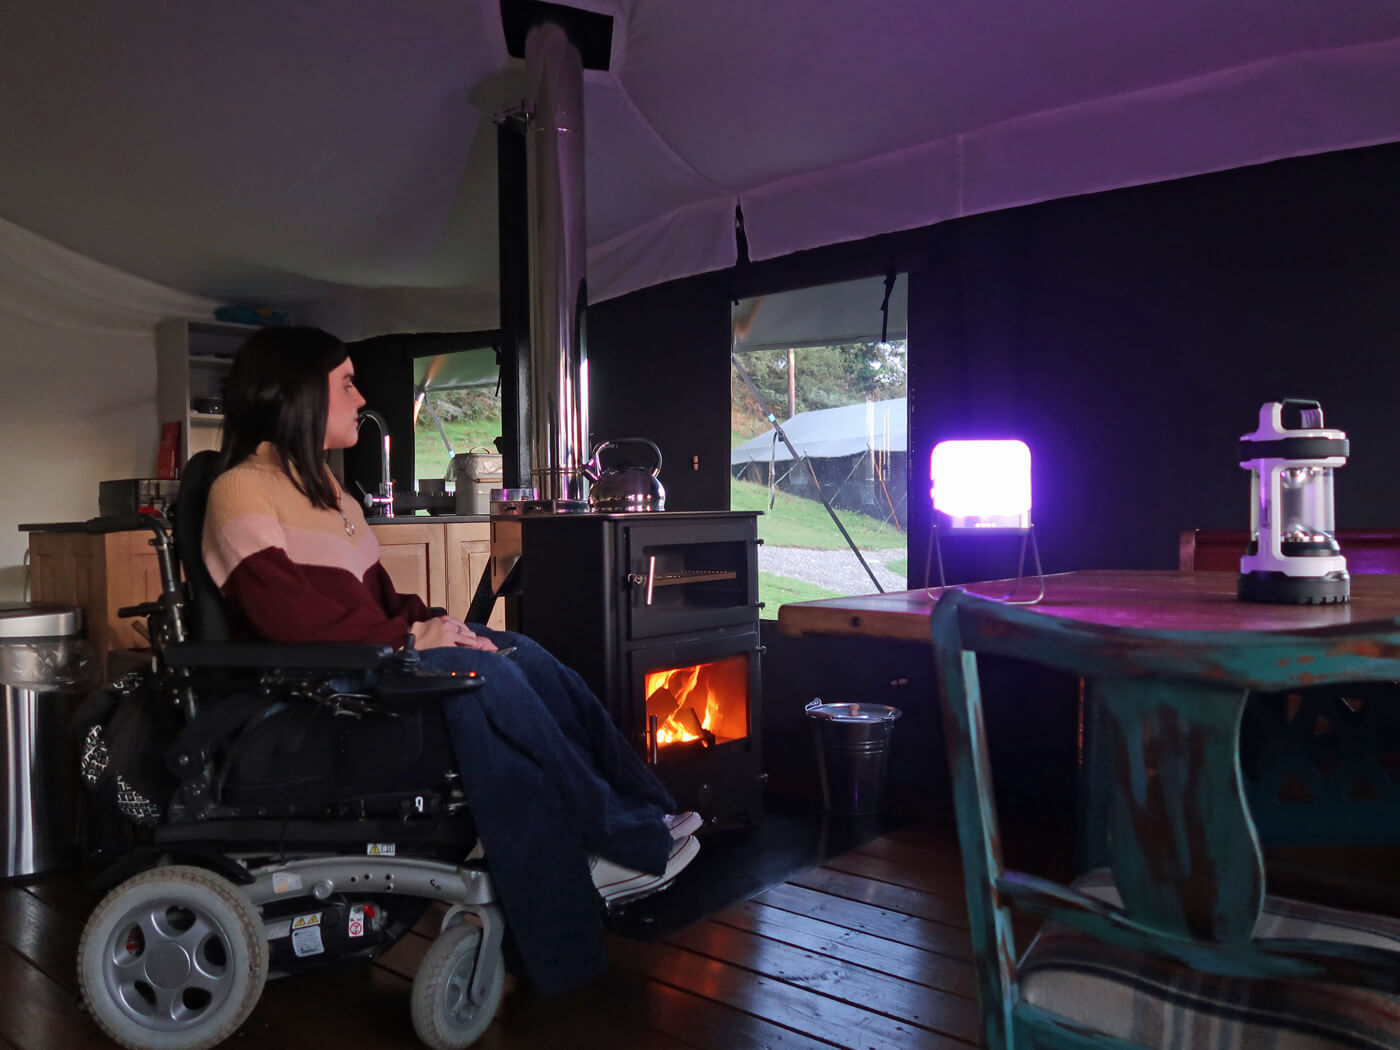 Emma sitting in her wheelchair next to the log fire in the safari tent.